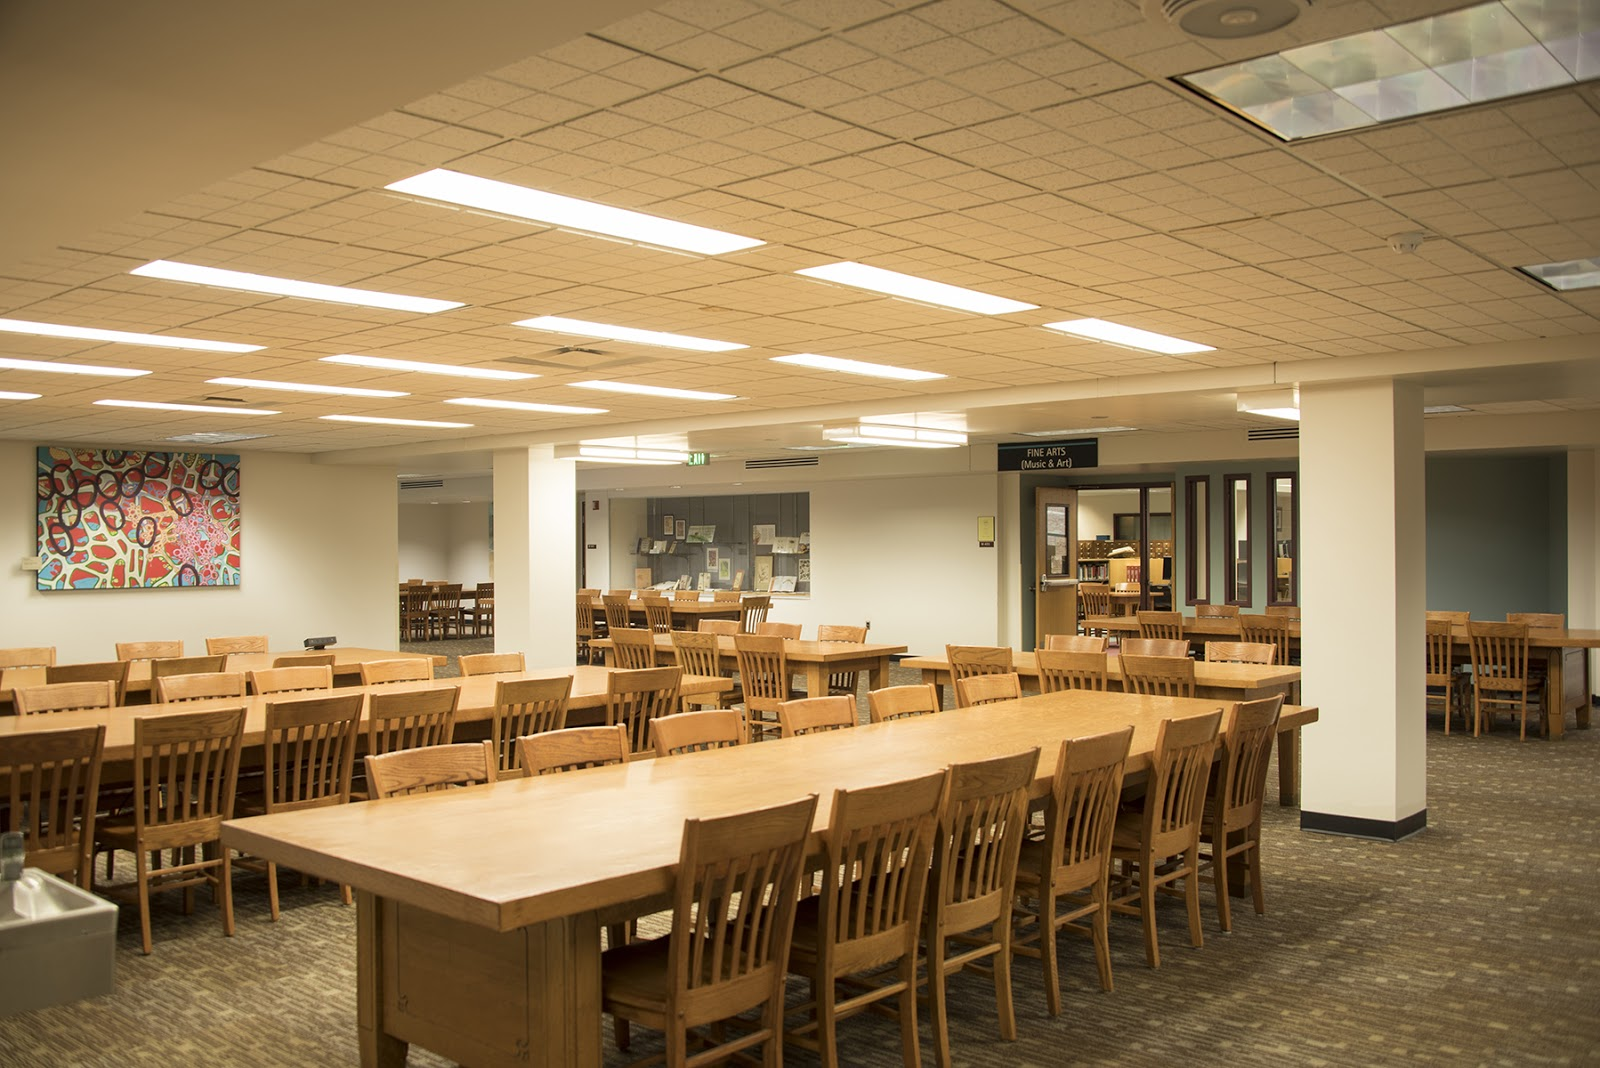 Music Library Lobby Seating